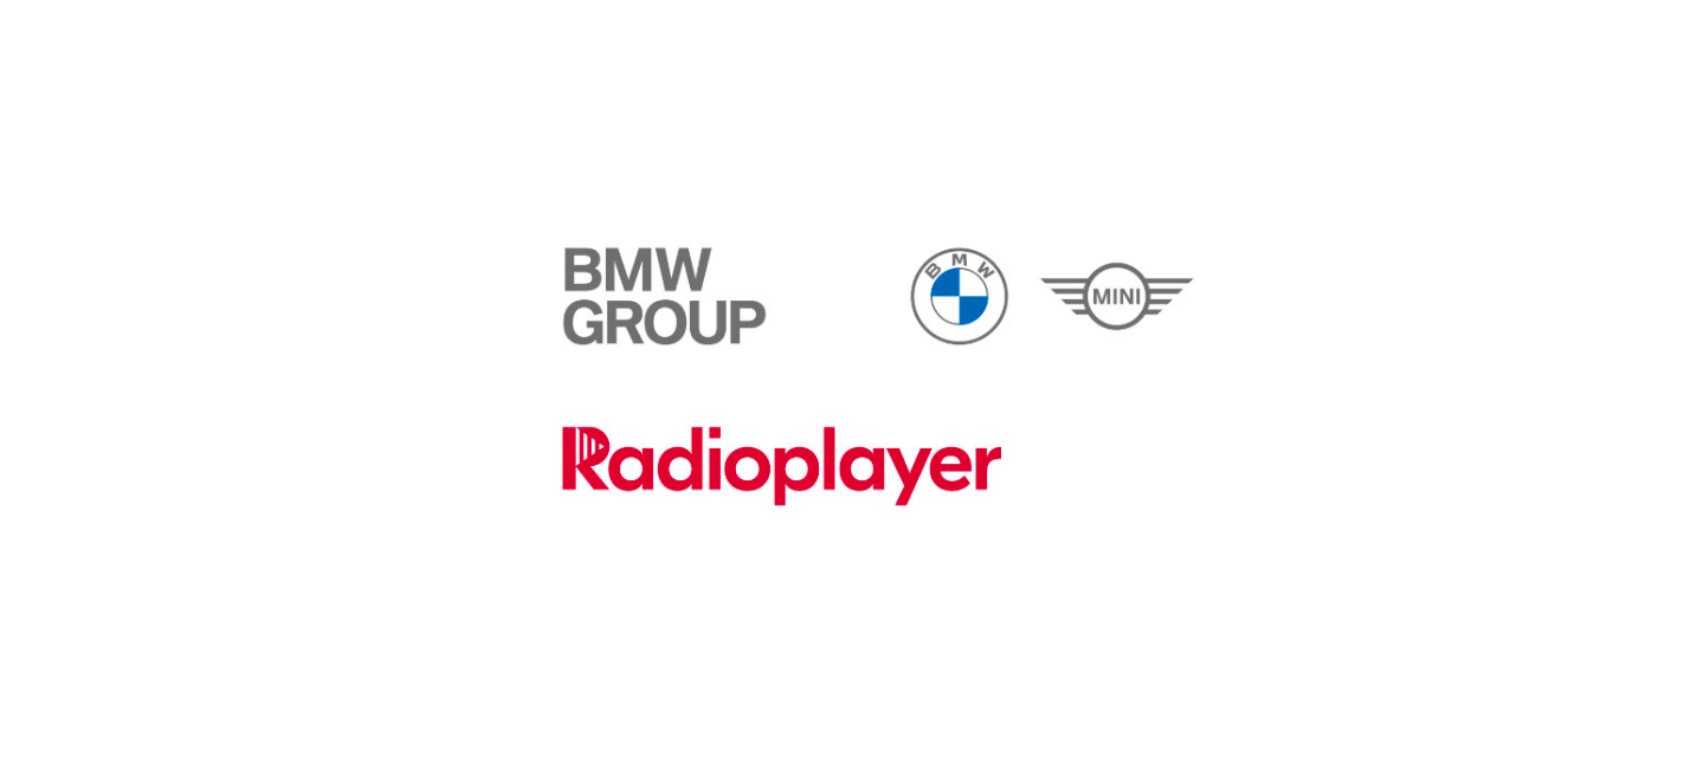 Radioplayer gewinnt BMW als Automotive‐Partner